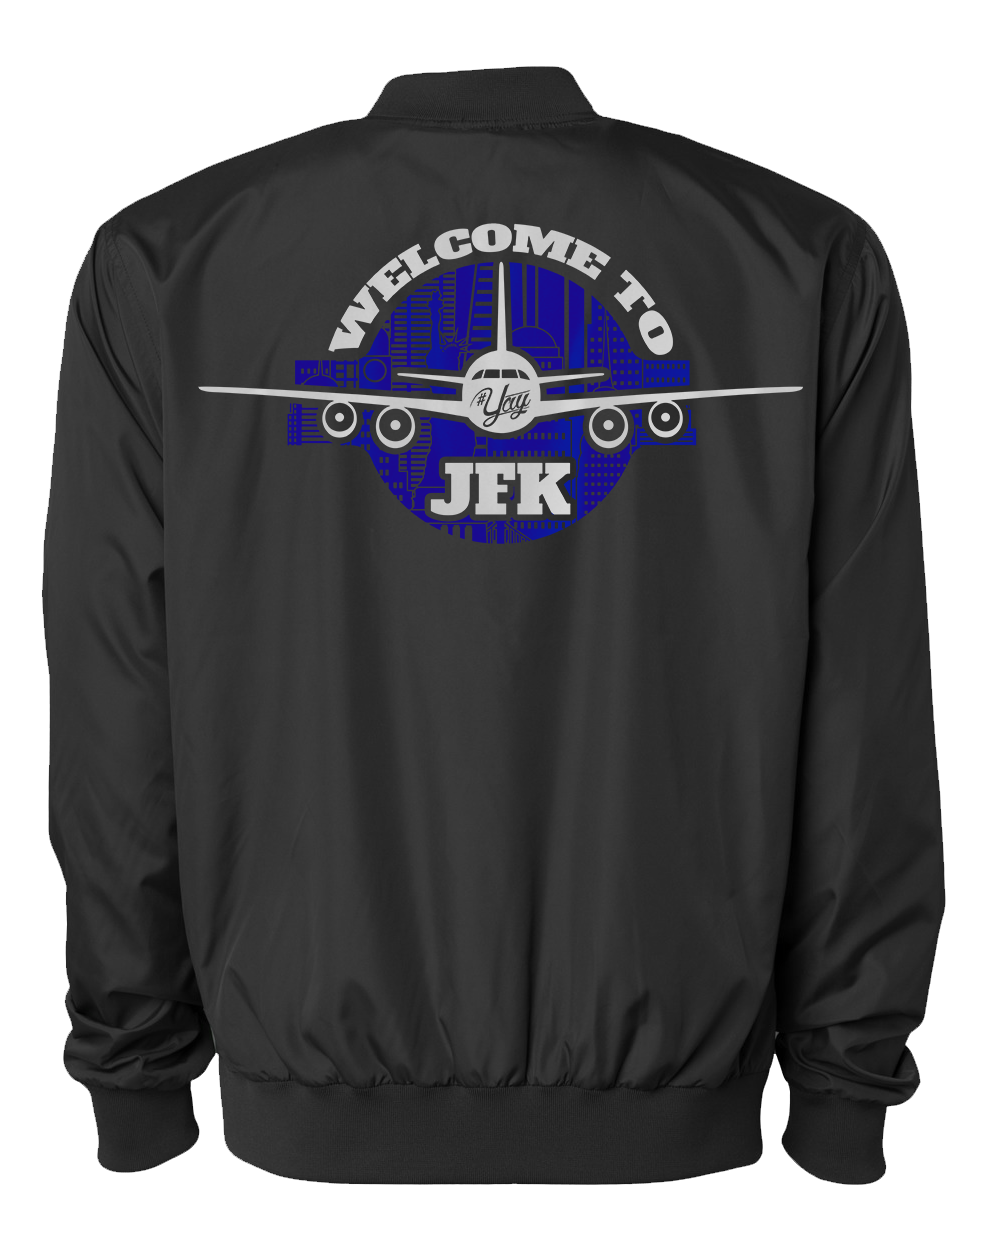 Mono YAY JFK NYCBG Bomber Jacket (Black)